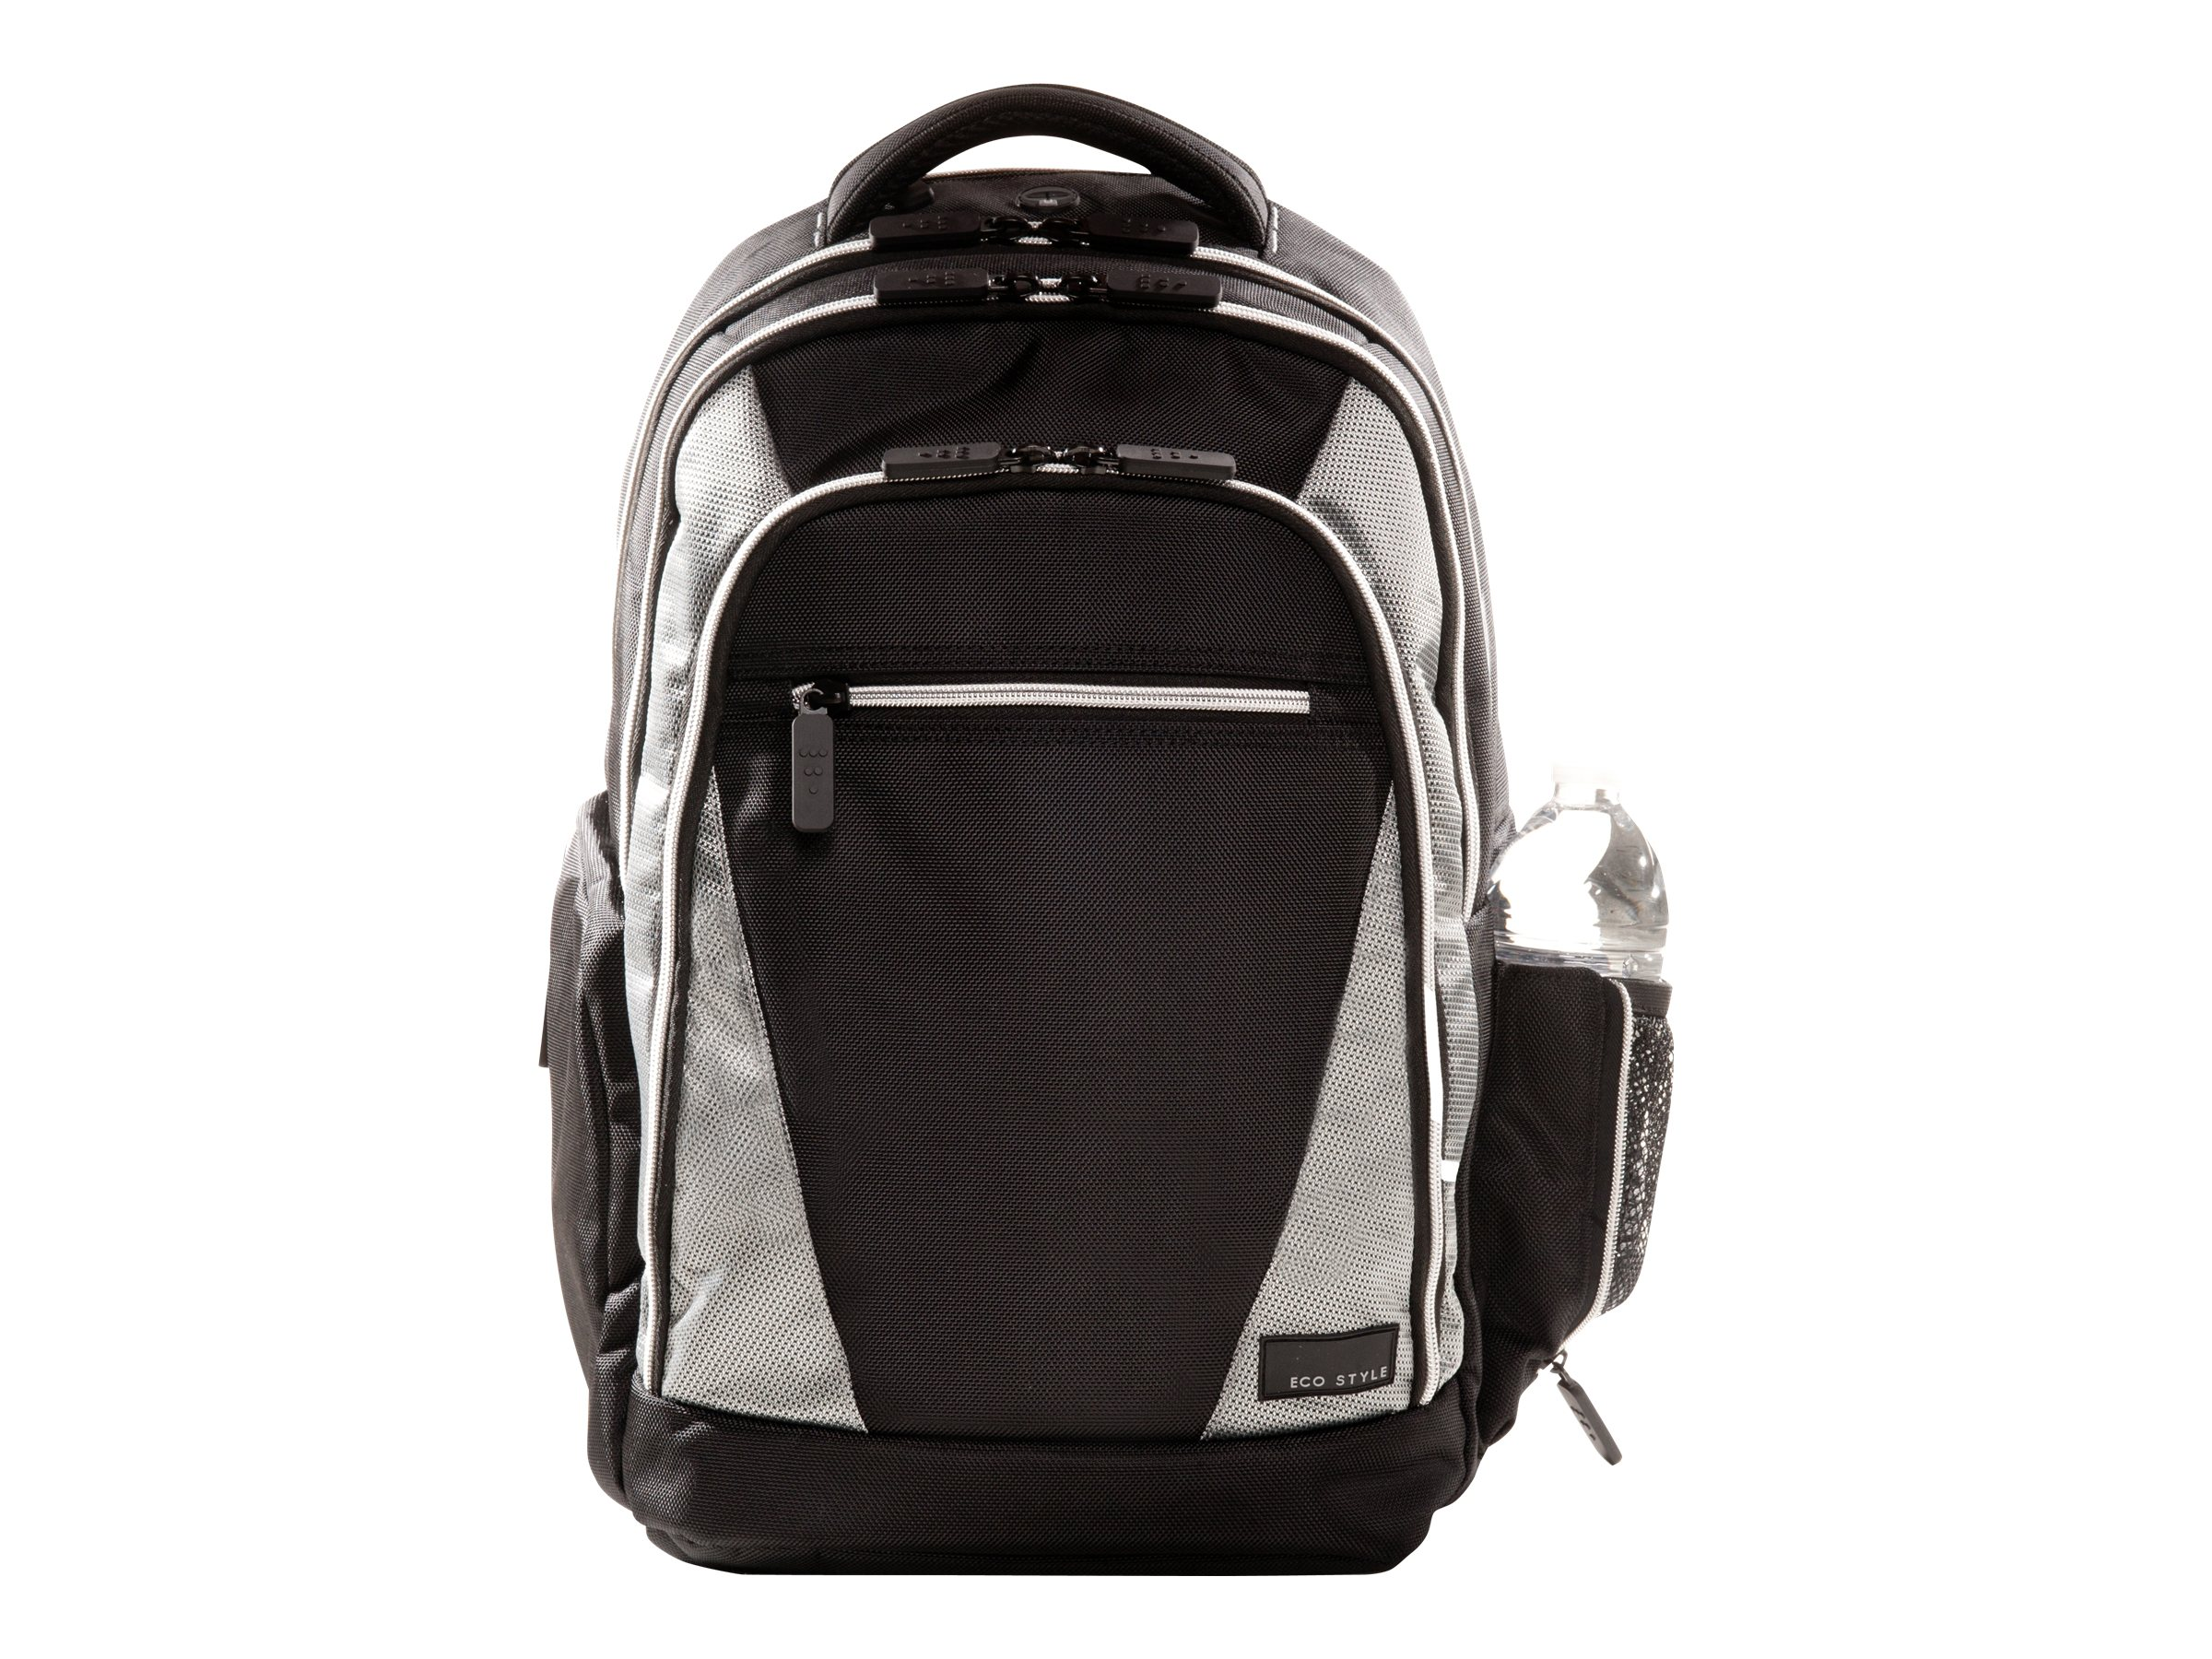 Eco Style Sports Voyage Backpack, Fits 17.3 Notebook, Black Silver, EVOY-BP17